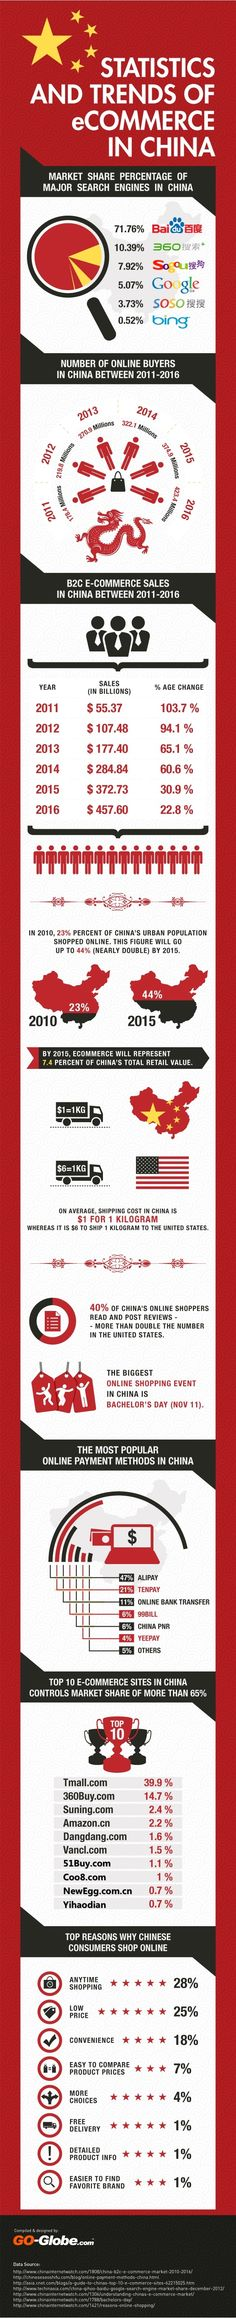 By 2016, China Will Have 423 Million E-Commerce Shoppers Spending $457 Billion [INFOGRAPHIC]